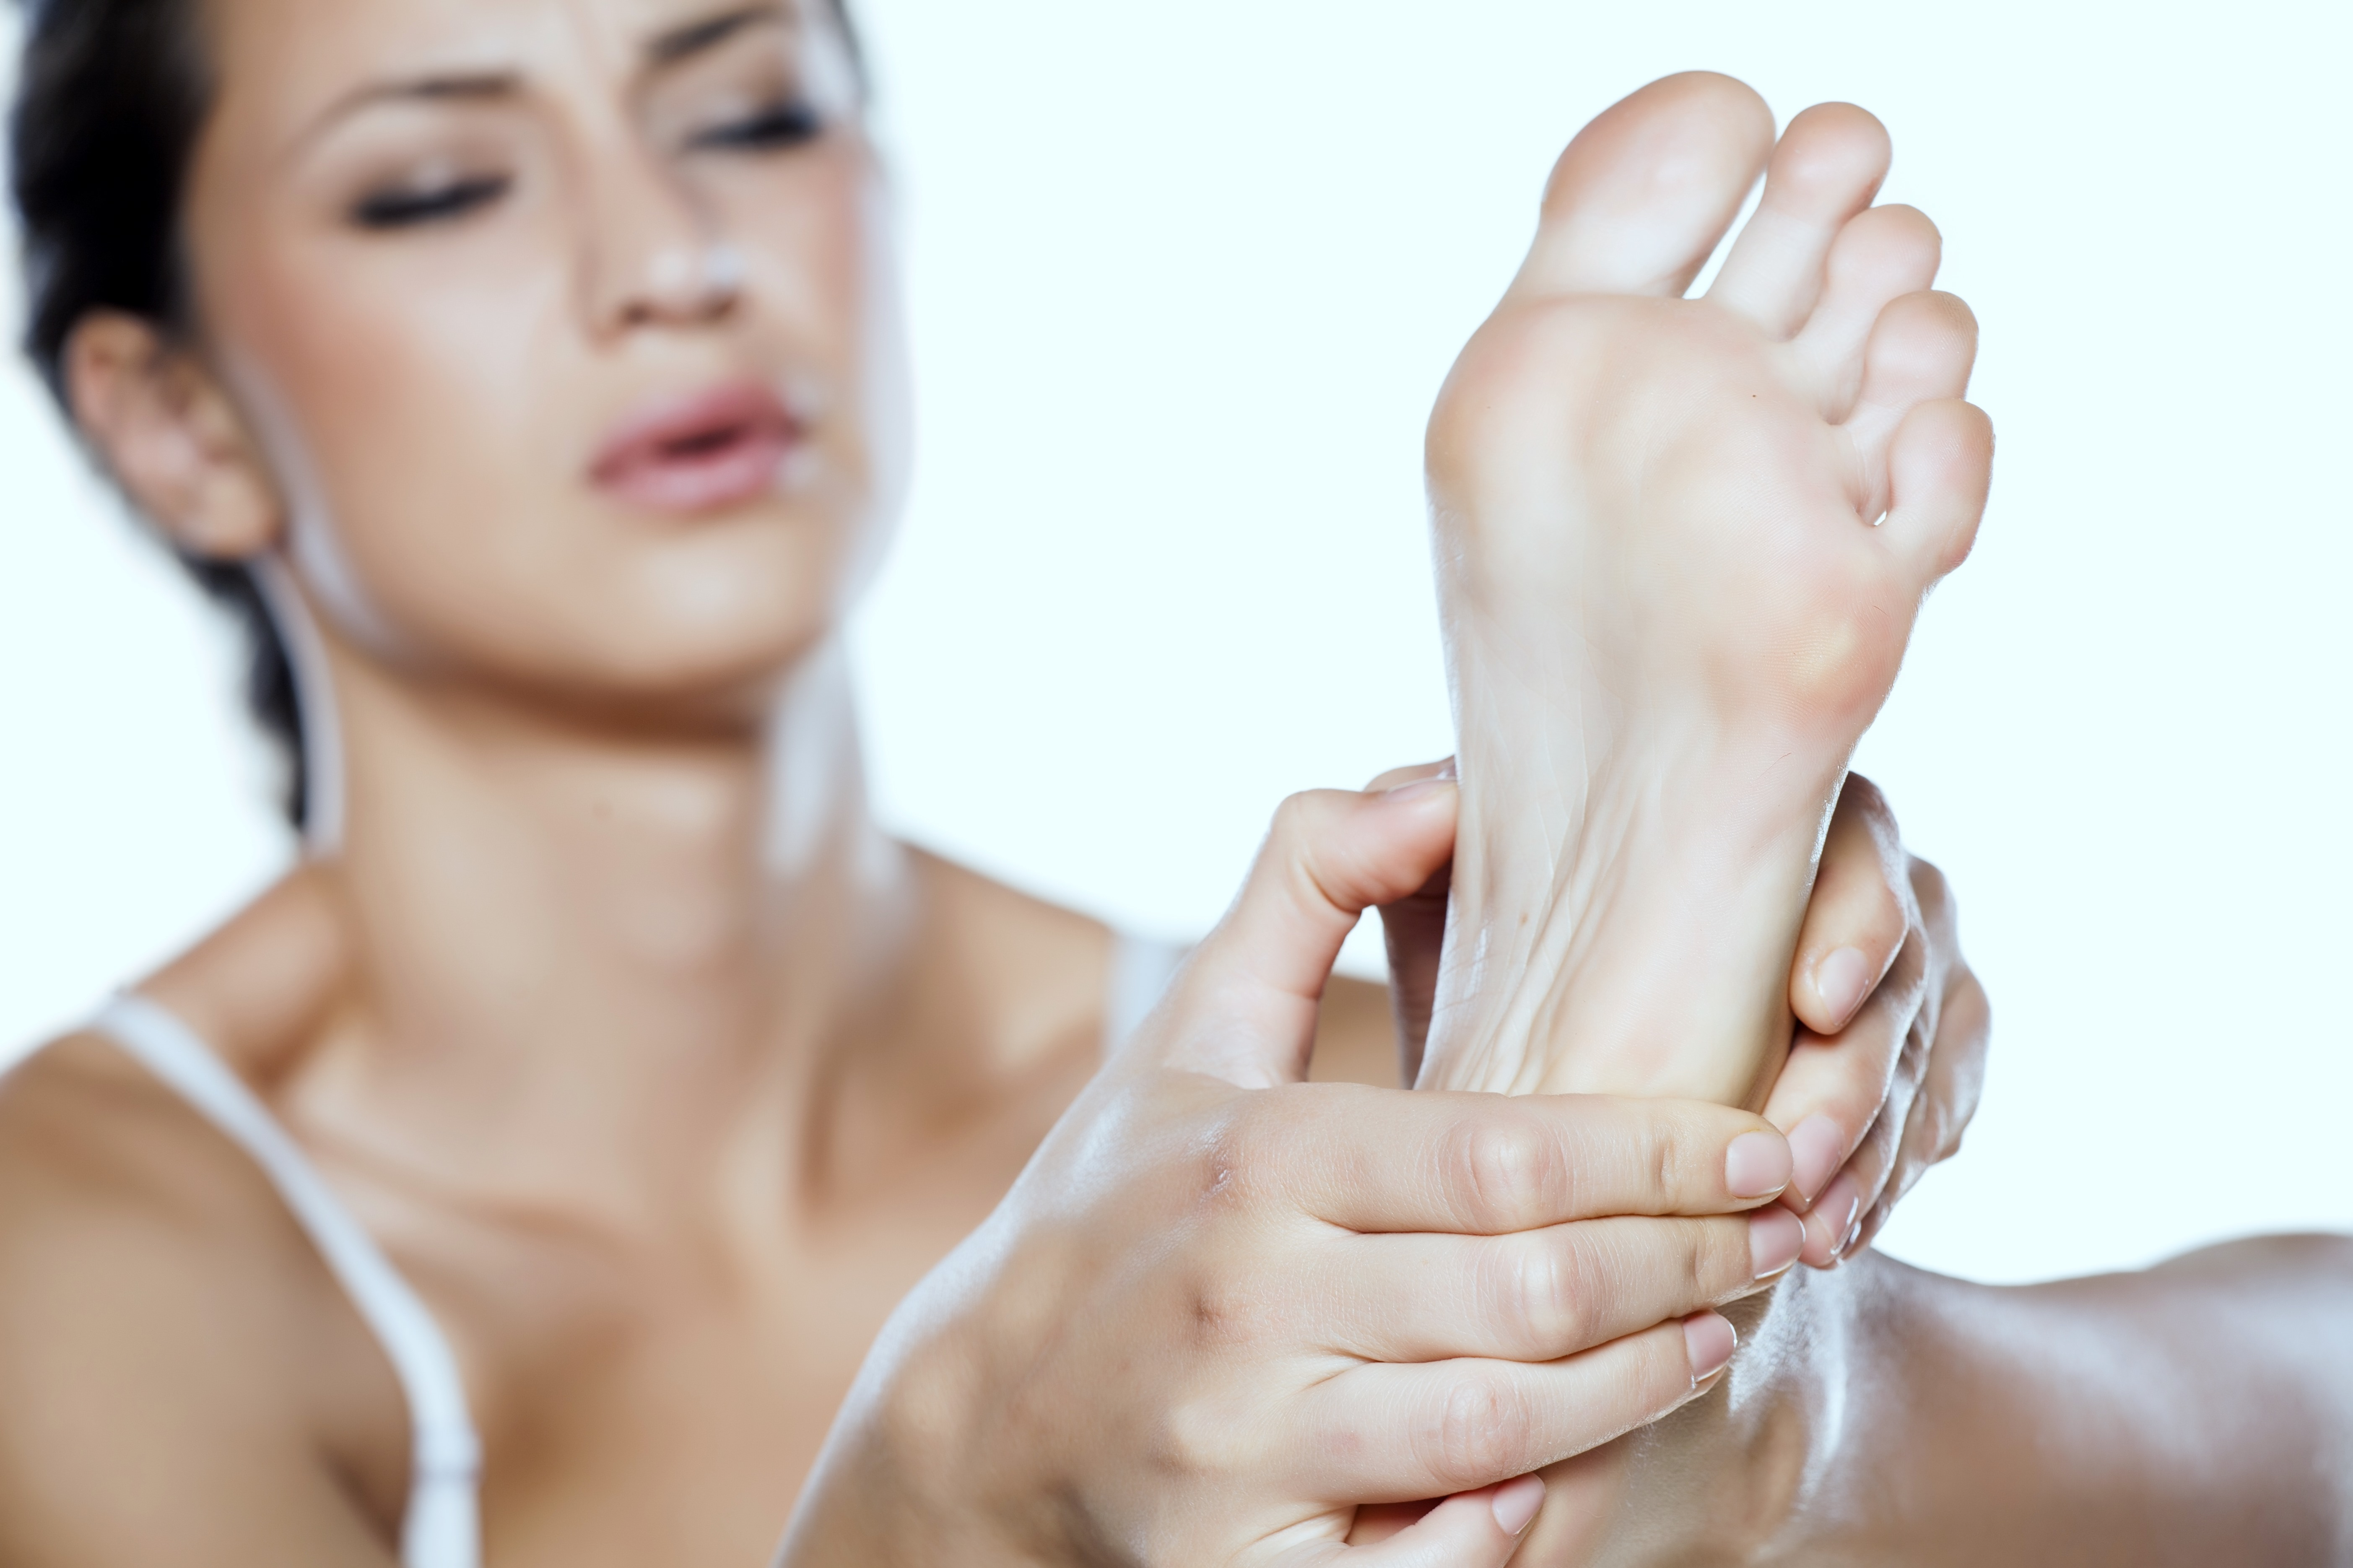 Radial Pulse Therapy (also known as Radial Shockwave Therapy) is an FDA cleared technology proven to treat chronic foot, heel, and ankle pain.